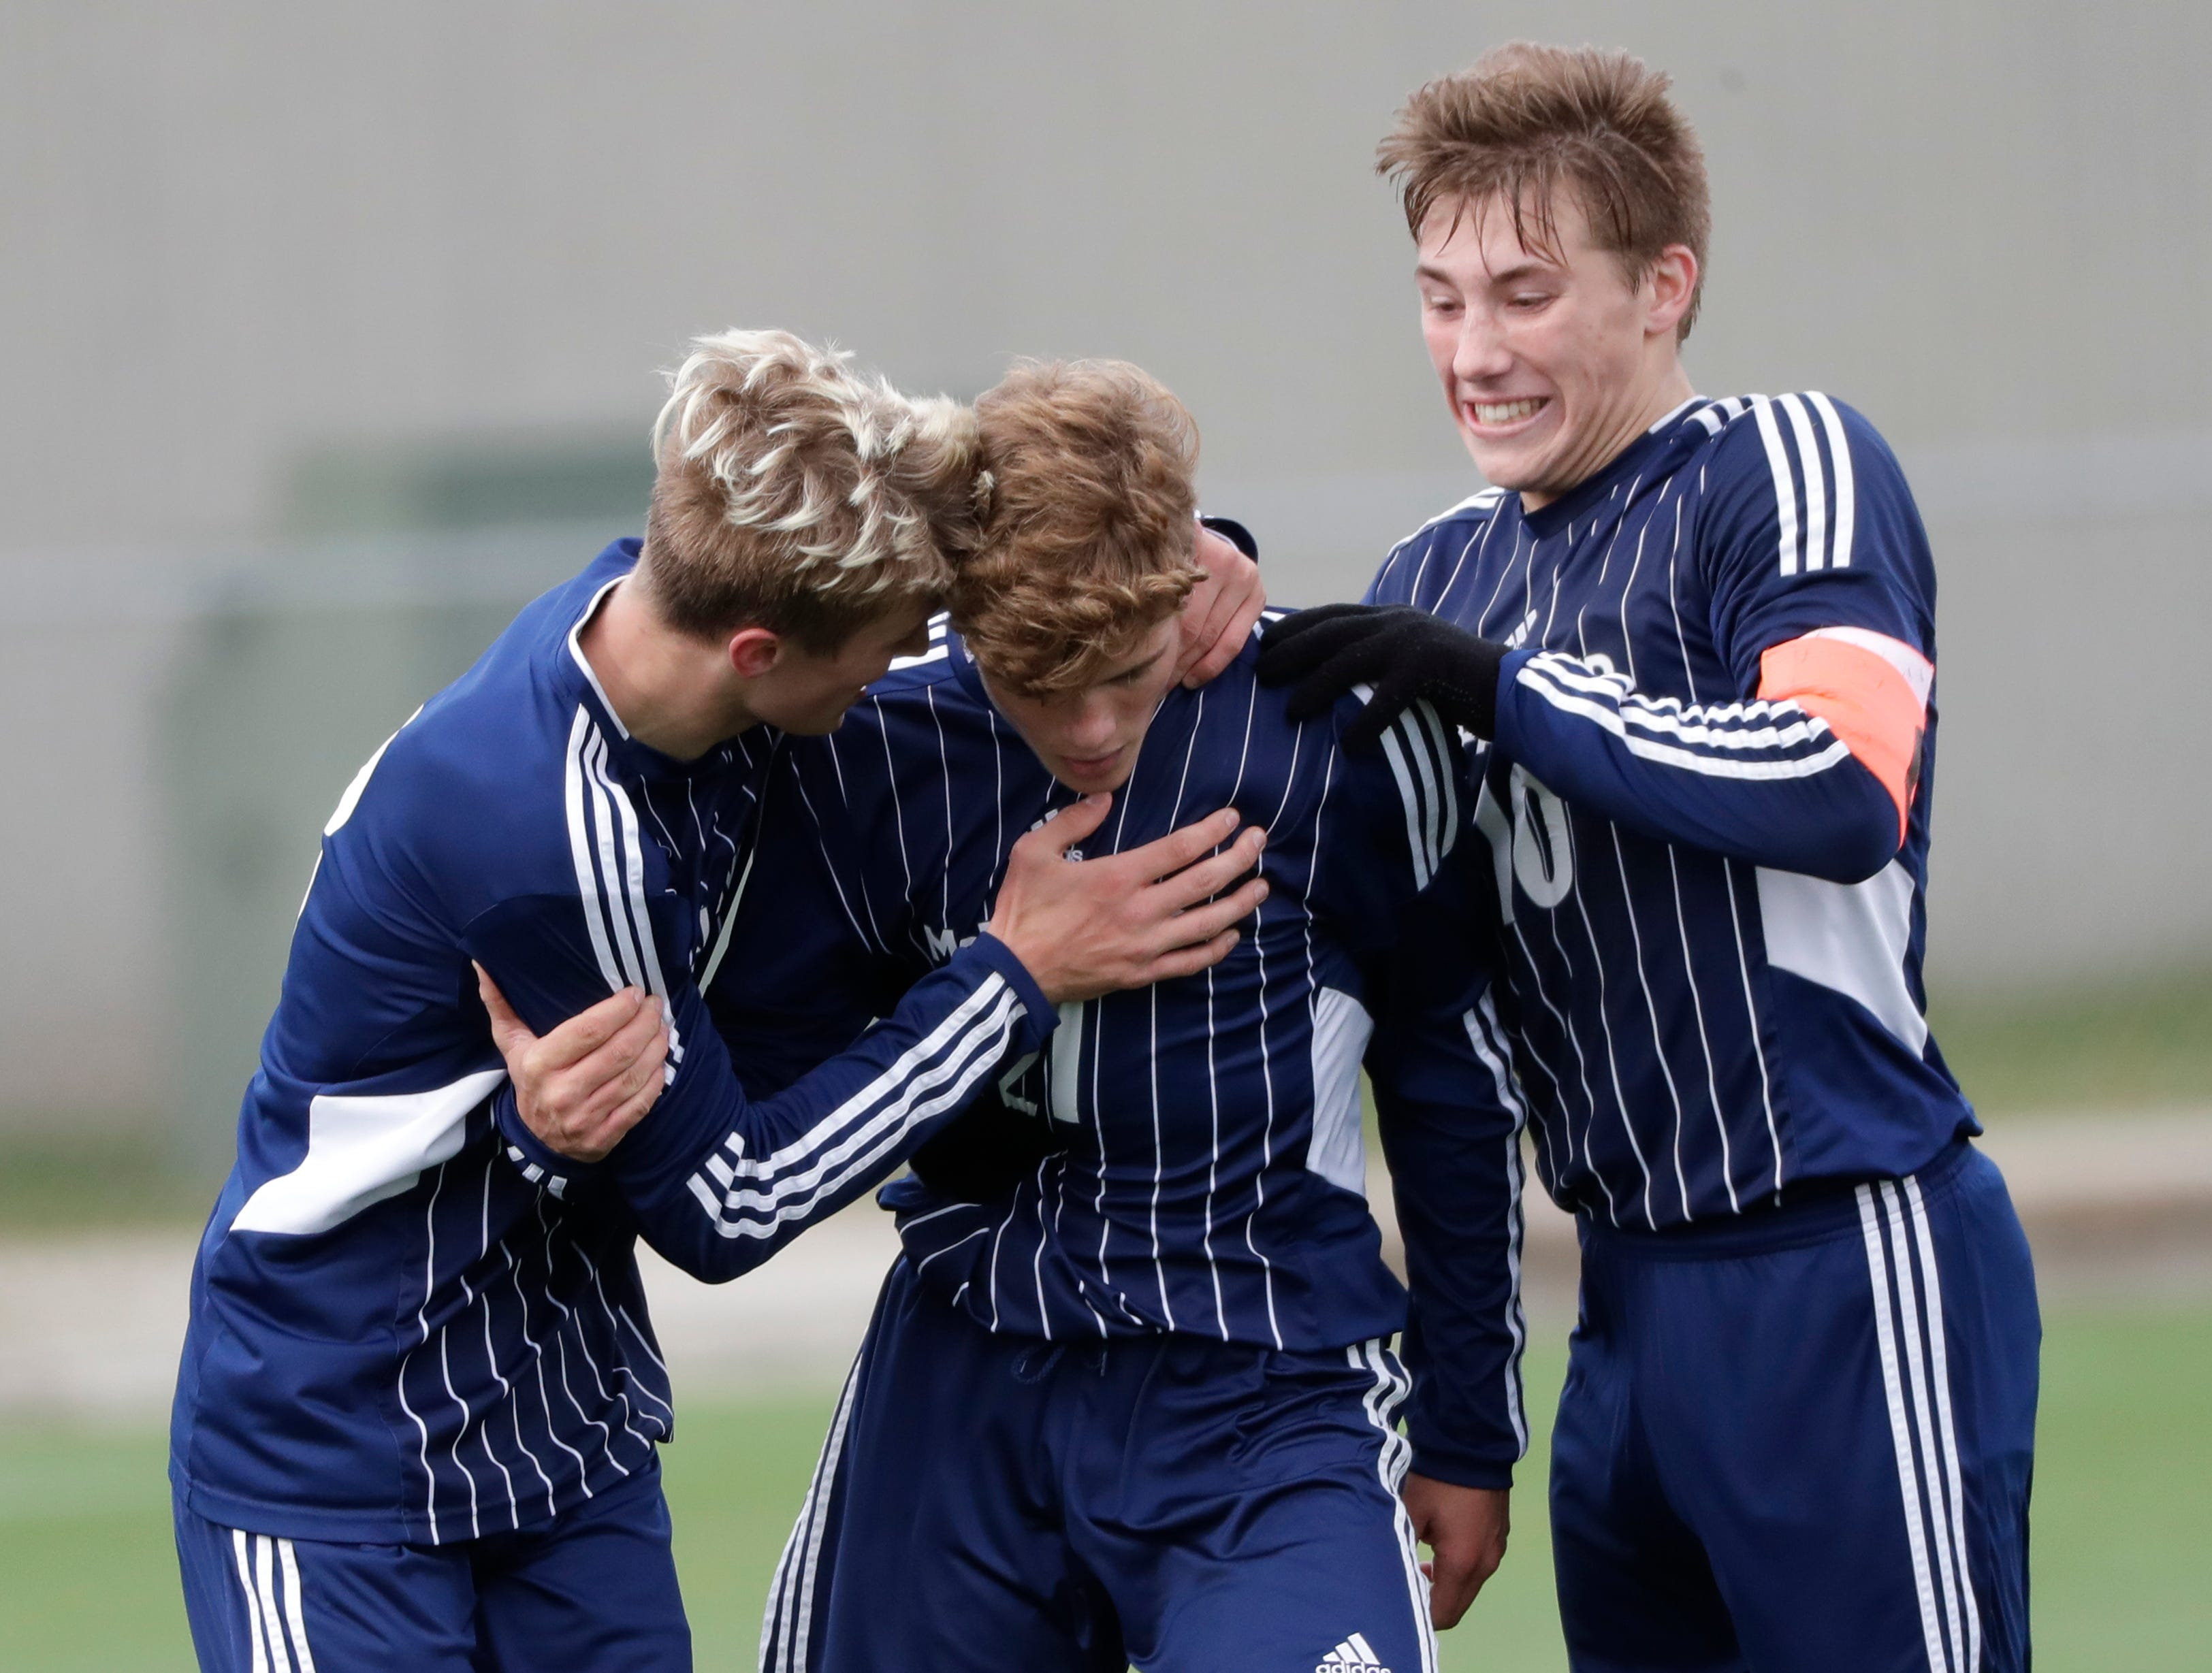 McFarland High School's Ethan Nichols, left, and Caleb Blair, right, congratulate Zach Nichols after he scored a goal against Plymouth High School during their WIAA Division 3 state semifinal boys soccer game Thursday, November 1, 2018, at Uihlein Soccer Park in Milwaukee, Wis. The goal gave McFarland a 2-0 lead with less than two minutes to play in the game.